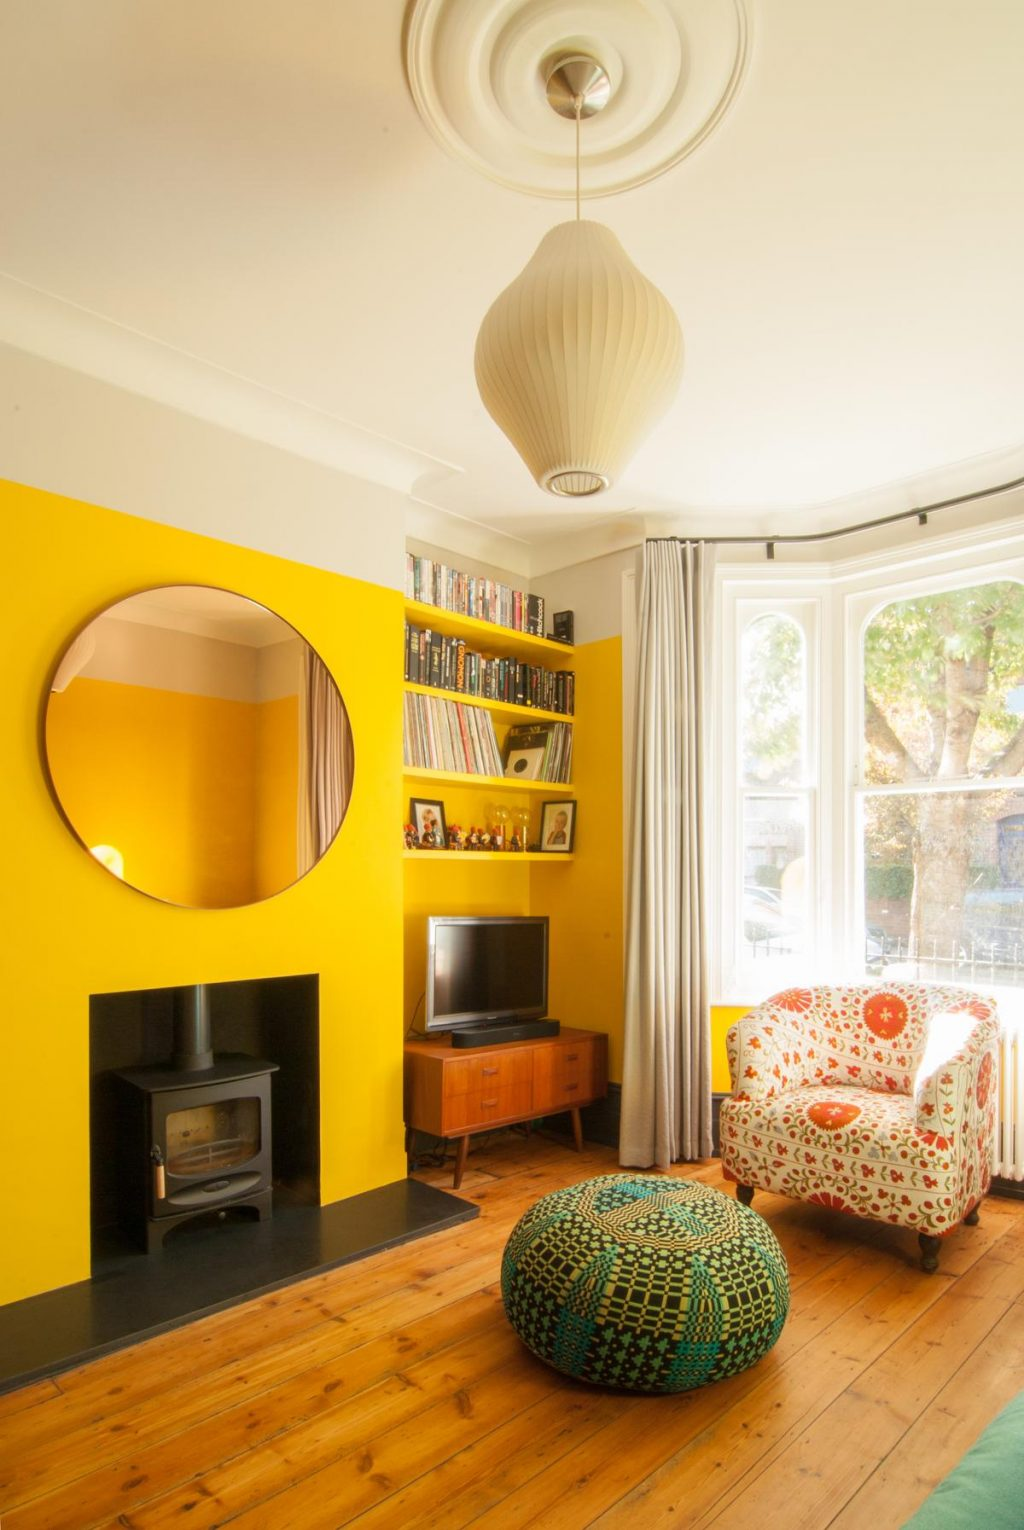 A Refurbishment and Extension of a Family Home in Leytonstone